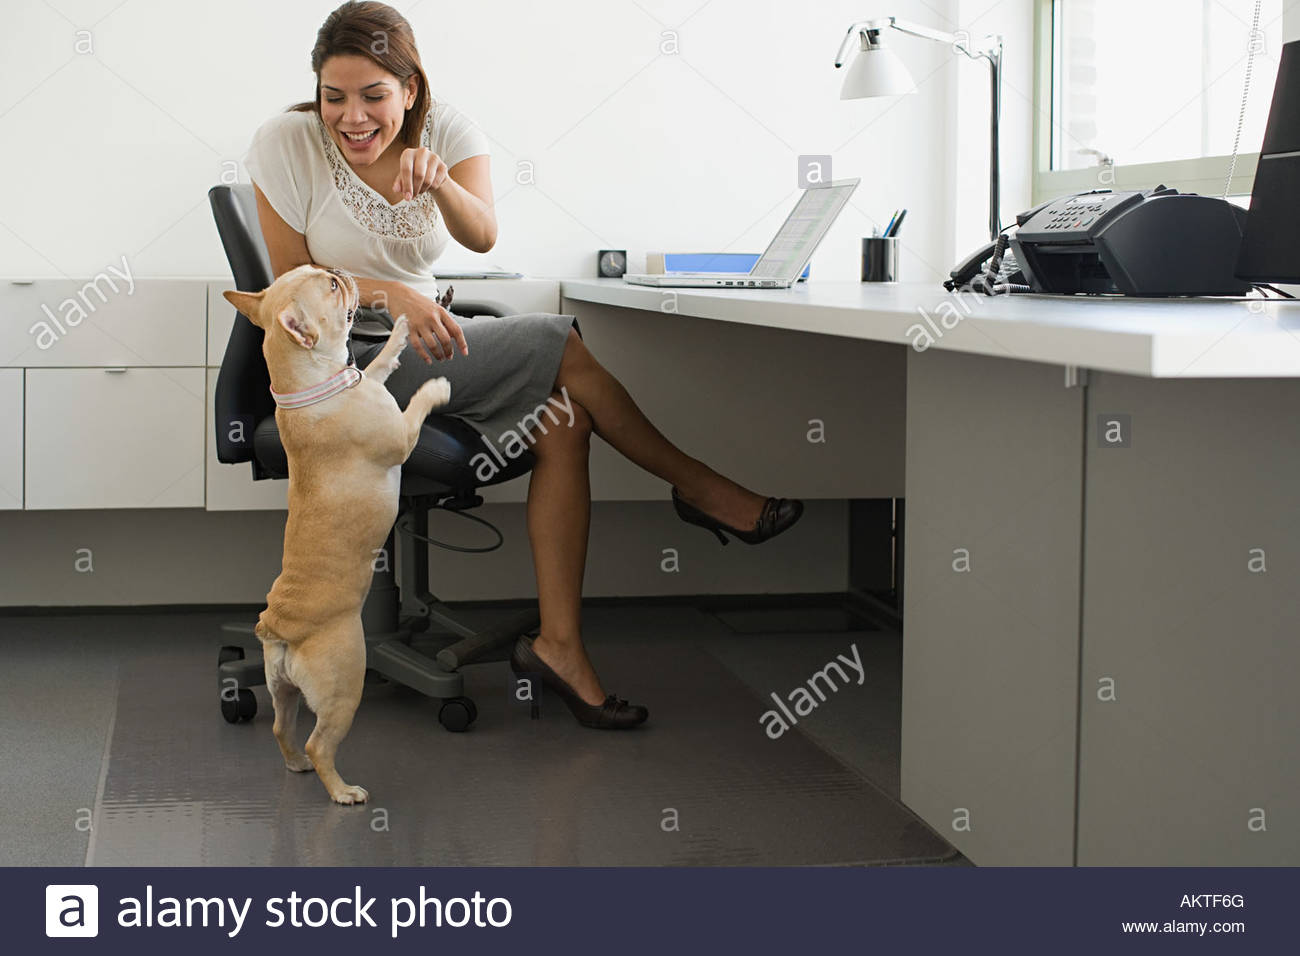 Woman with a french bulldog - Stock Image